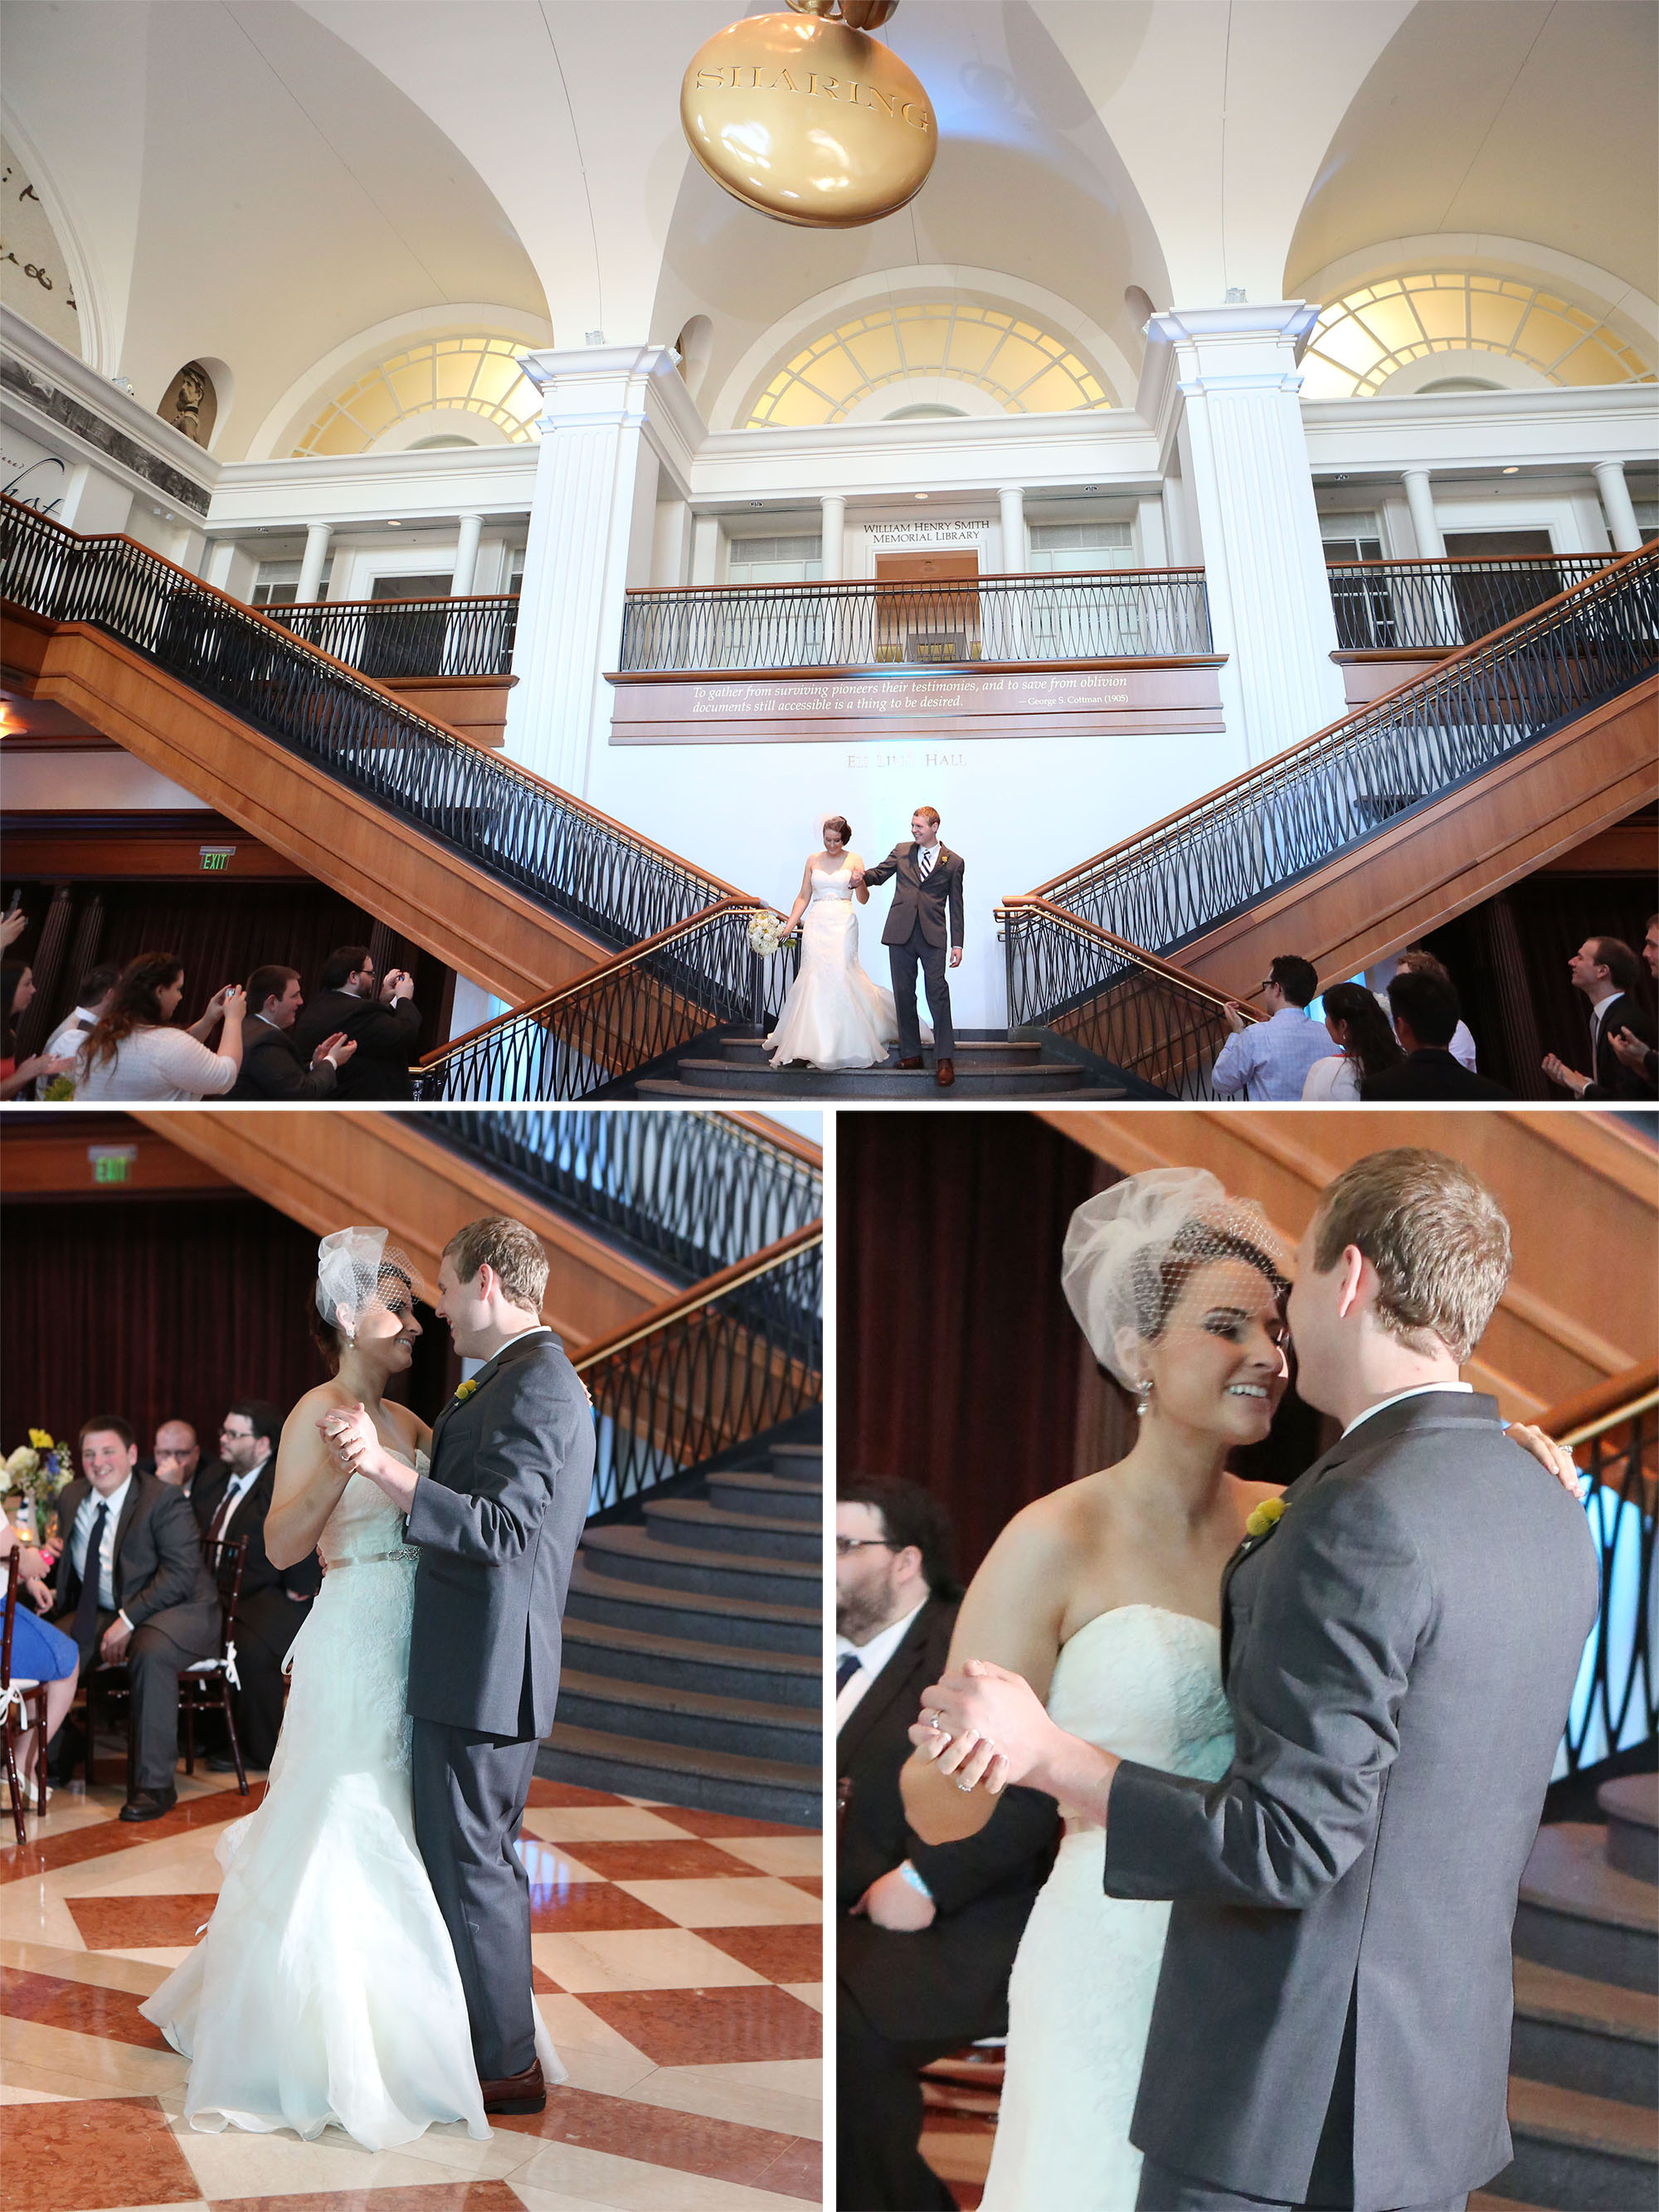 The grand staircase at the  Indiana Historical Society  made for the most dramatic bridal party entrance ever! Loved it!